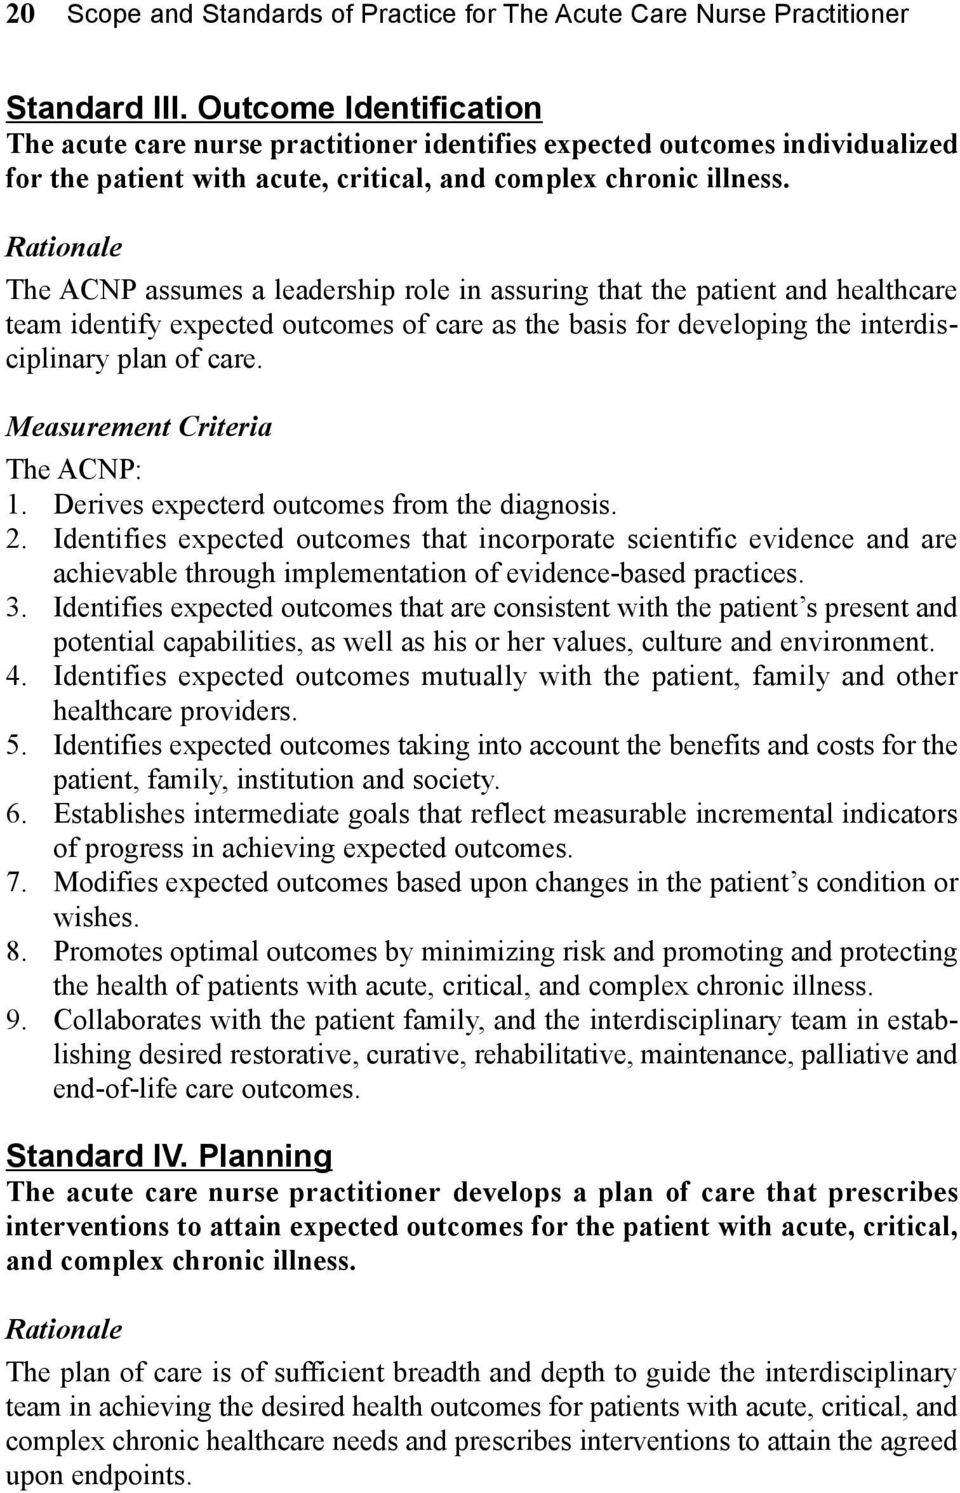 the acnp assumes a leadership role in assuring that the patient and healthcare team identify expected critical care nurse job description responsibilities